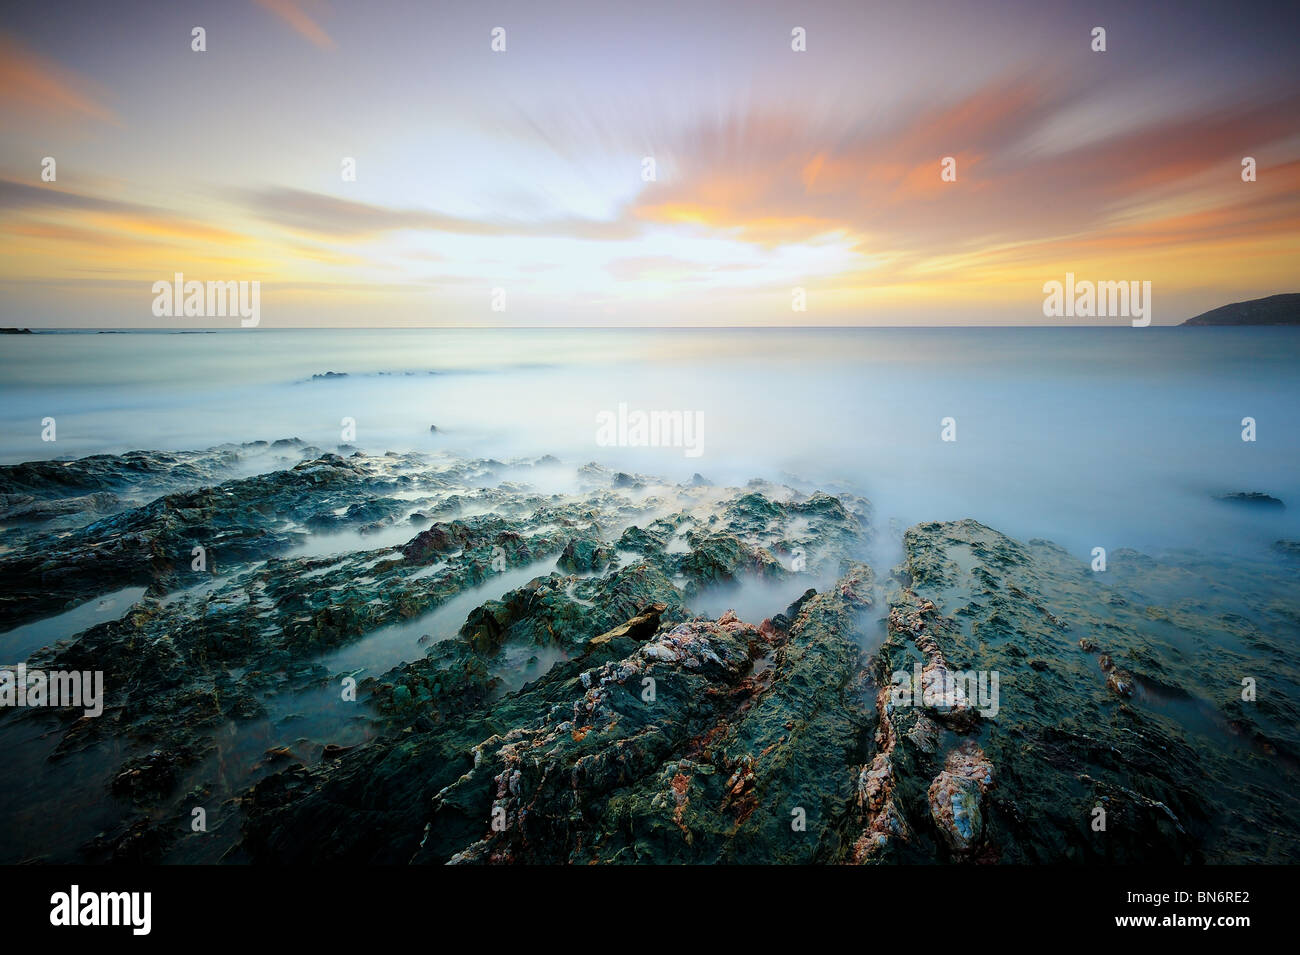 Moody seascape at sunset - Stock Image